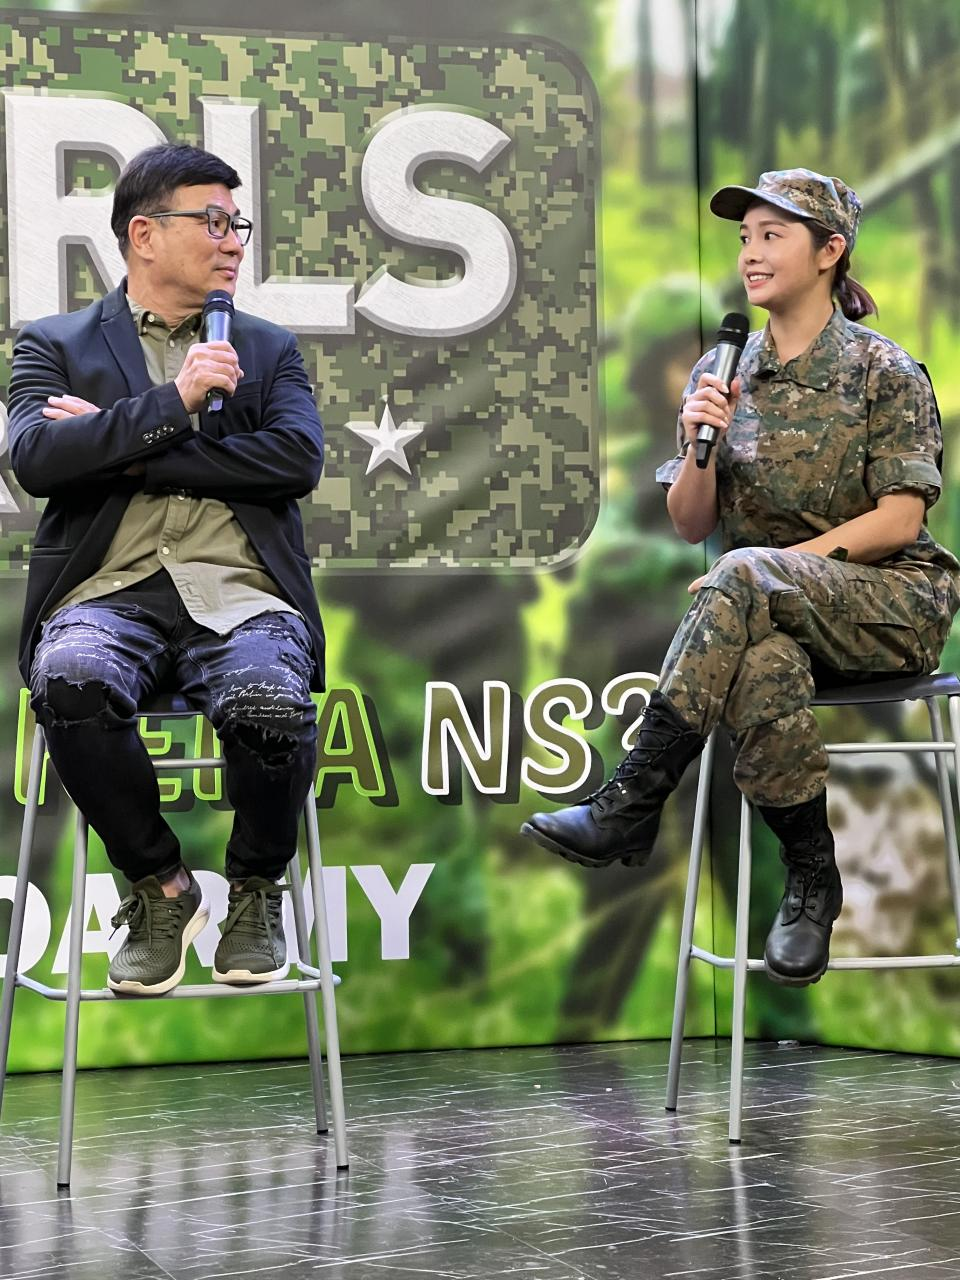 Filmmaker Jack Neo of J Team Productions; and actress Apple Chan, at a press conference for Neo's film Ah Girls Go Army on 29 Sept 2021. Chan will star as Lieutenant Zhang Xinyi in the film. (Photo: mm2 Entertainment)